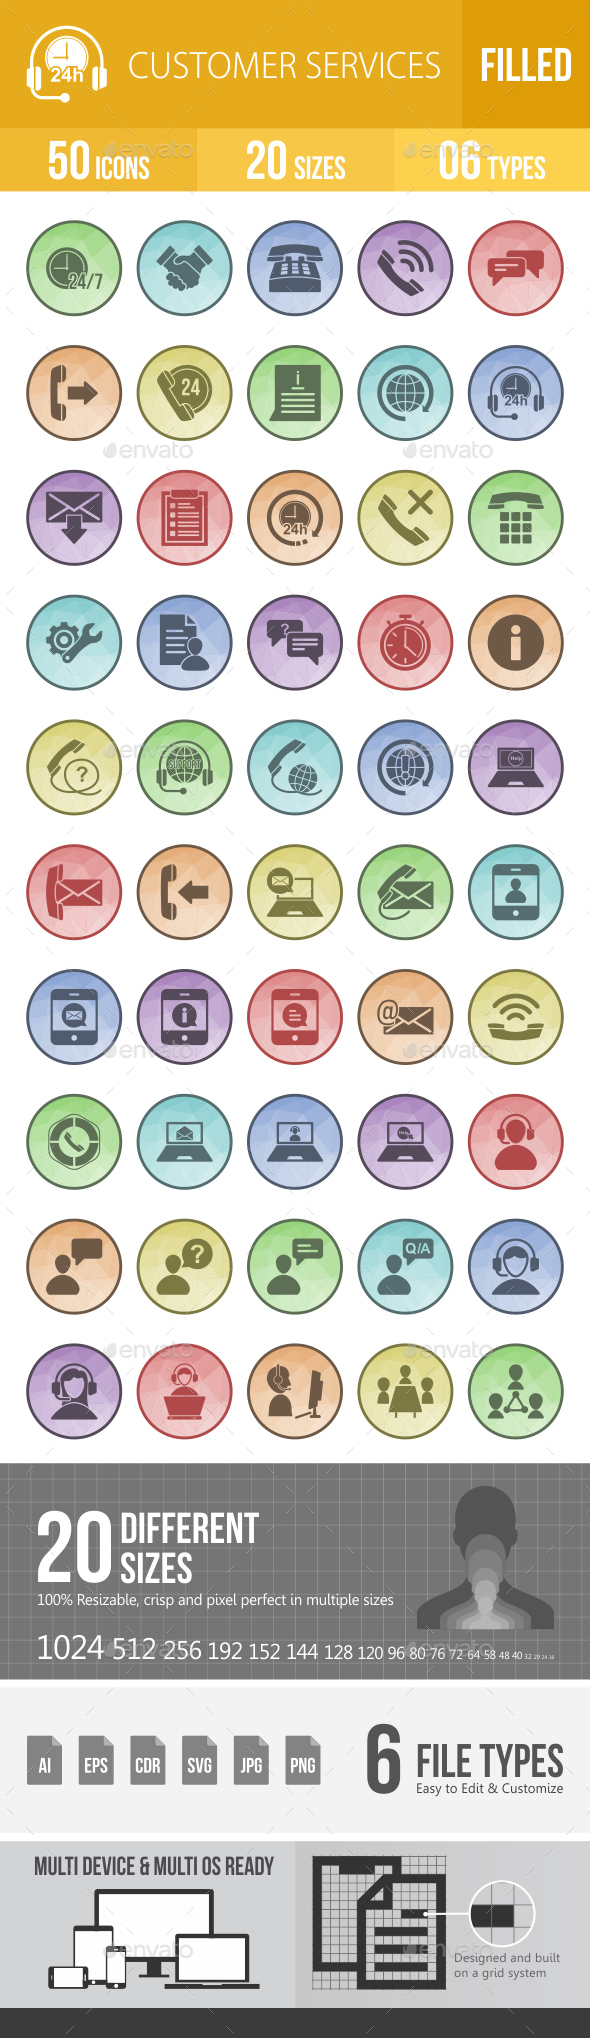 50 Customer Services Filled Low Poly Icons - Icons